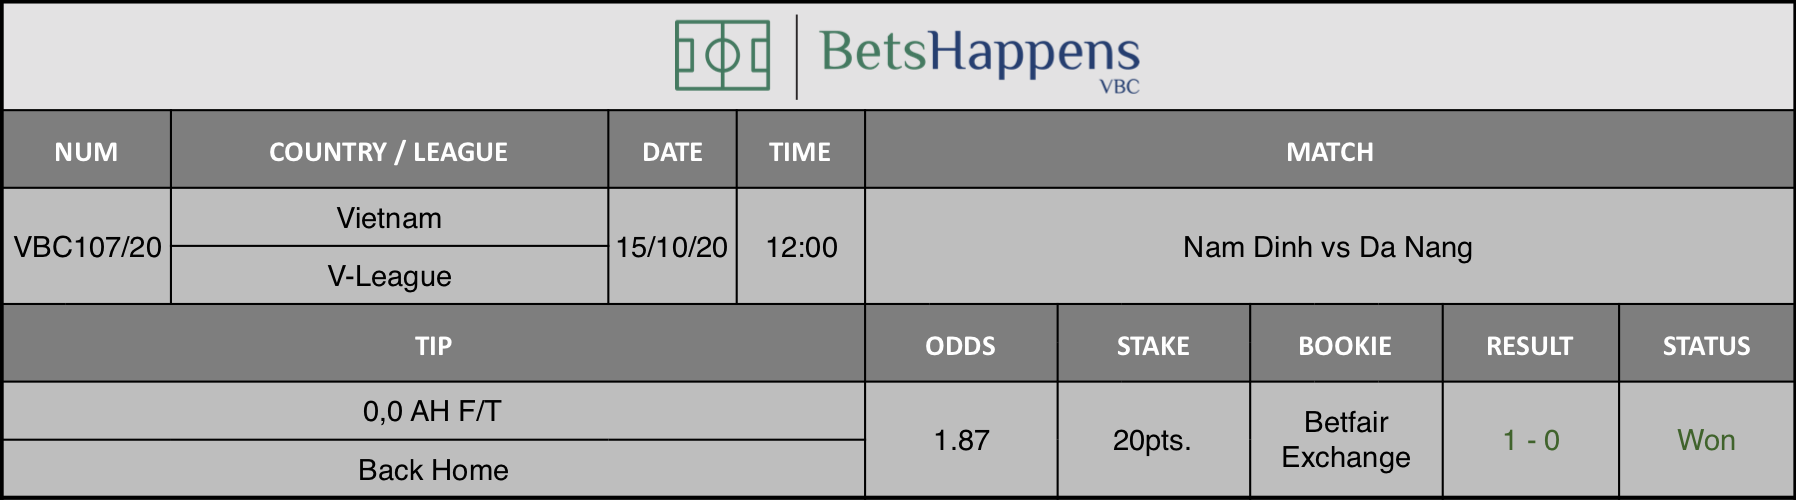 Results of our tip for the Nam Dinh vs Da Nang match where 0.0 AH F / T Back Home is recommended.